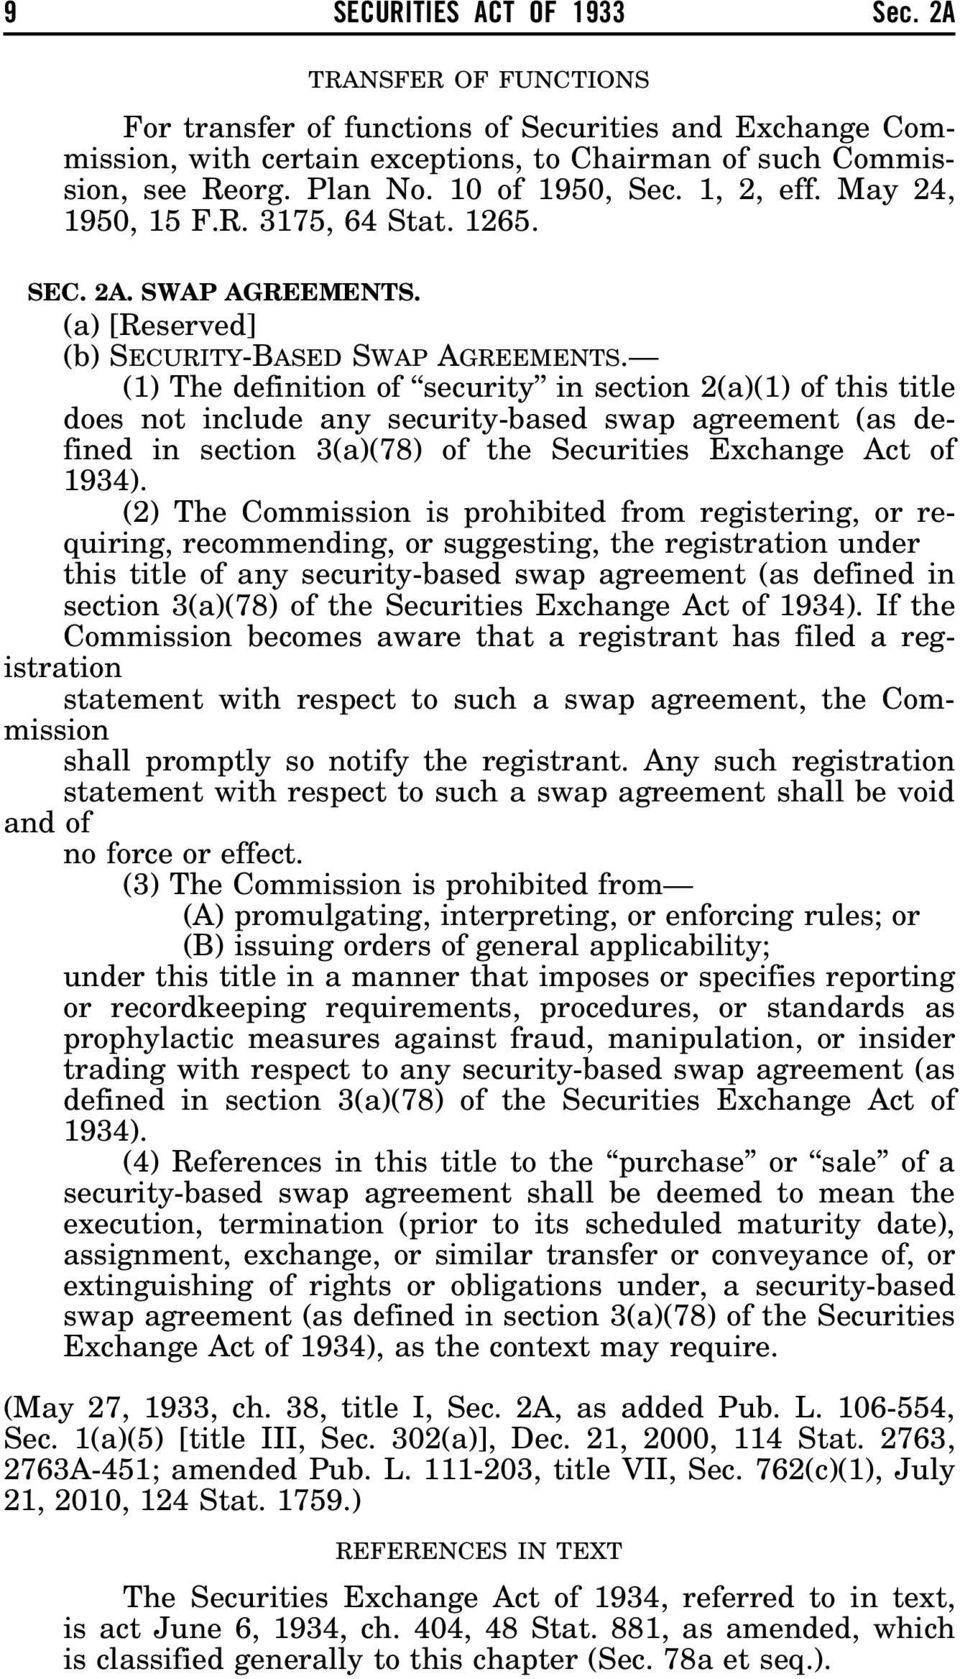 (1) The definition of security in section 2(a)(1) of this title does not include any security-based swap agreement (as defined in section 3(a)(78) of the Securities Exchange Act of 1934).